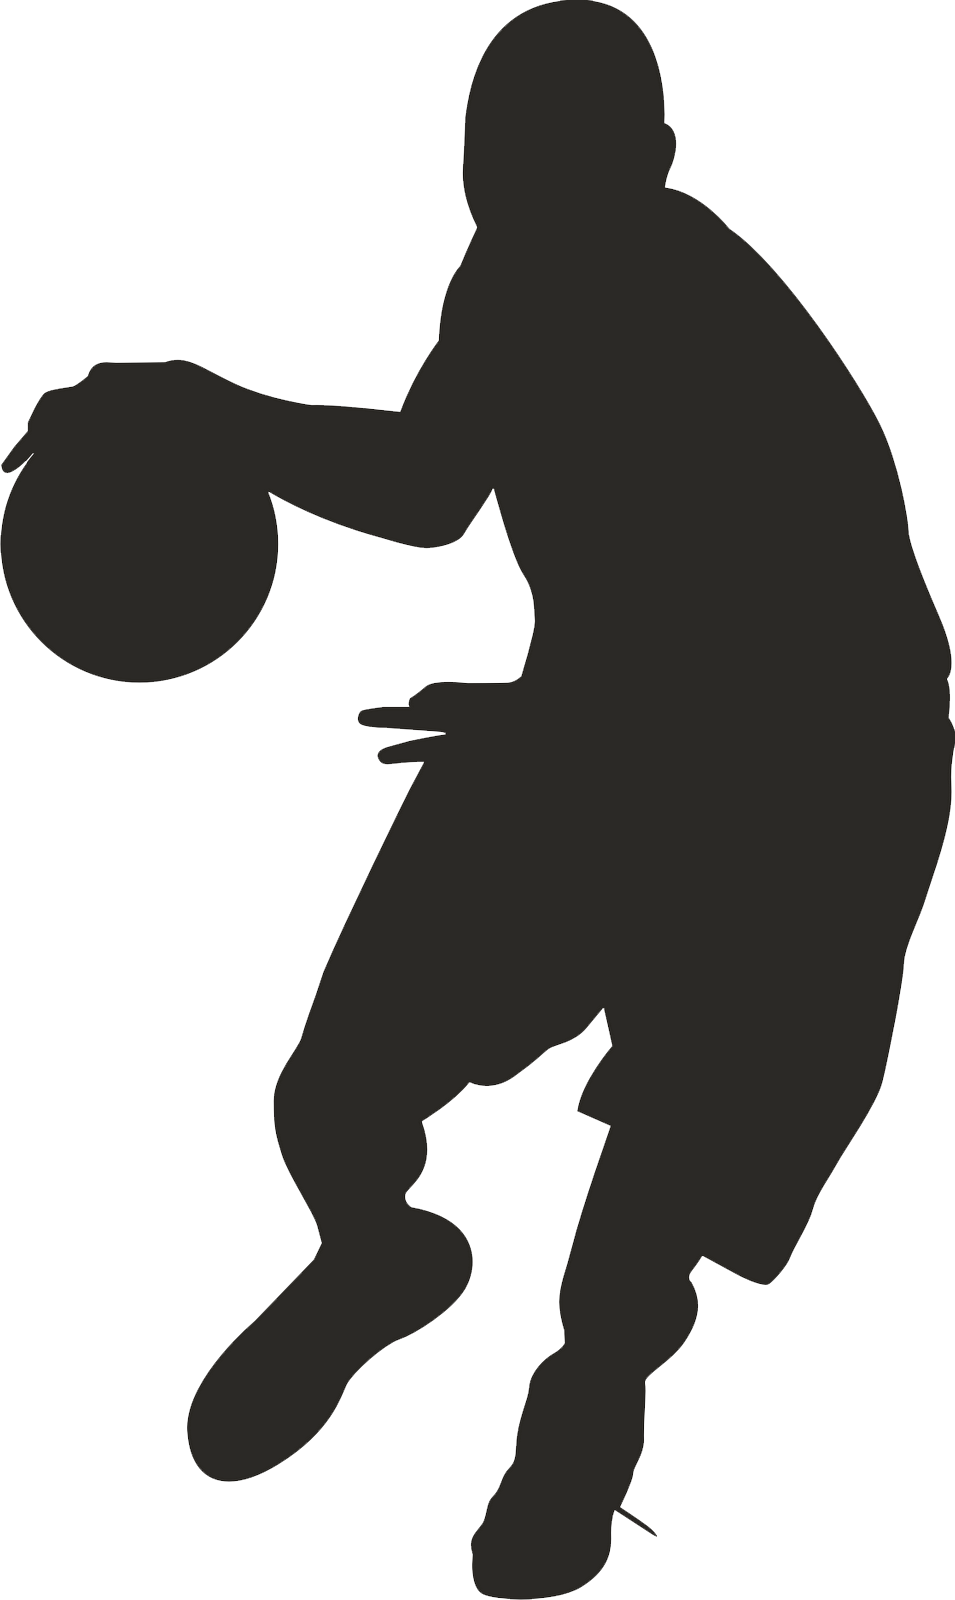 Basketball player clipart png transparent image